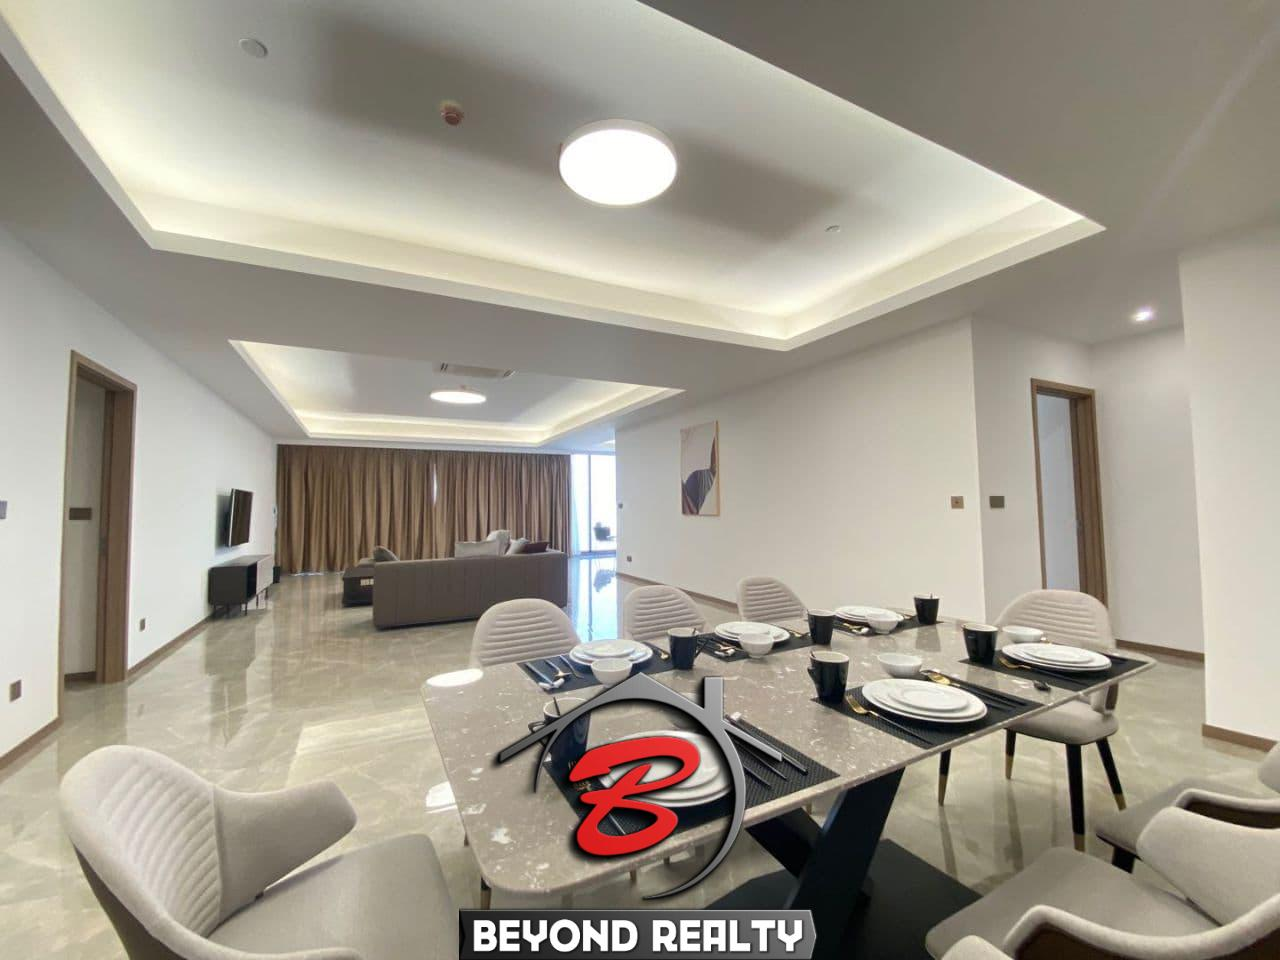 The living room of the 3-bedroom luxury spacious serviced flat for rent